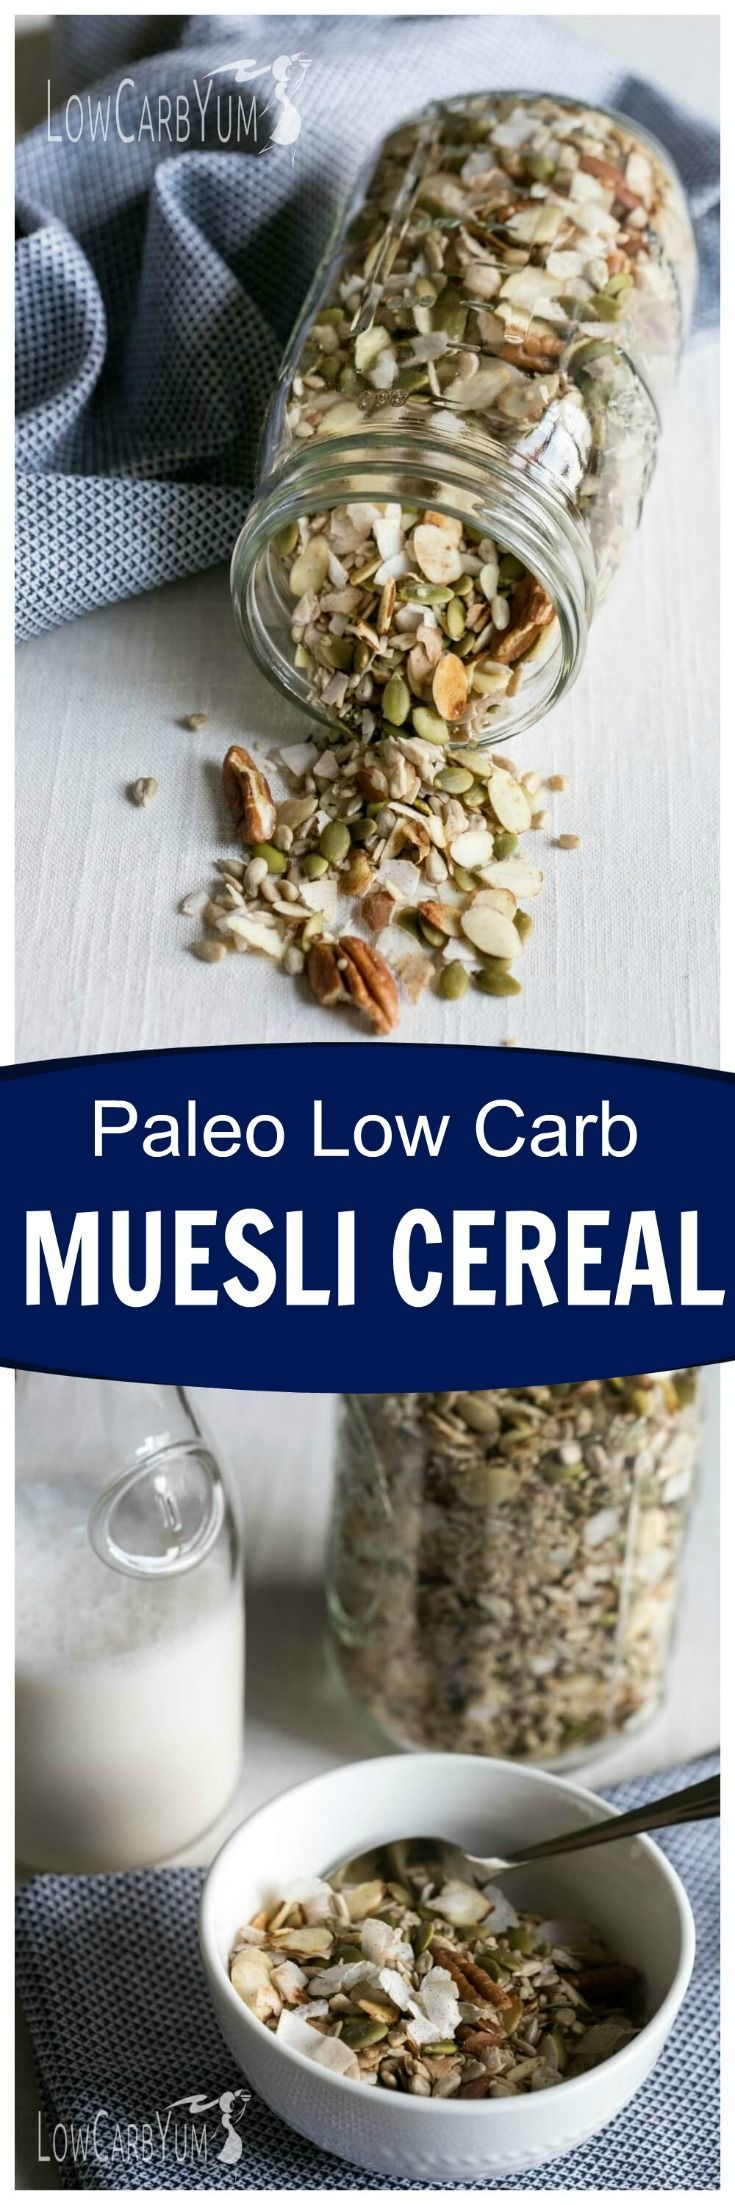 1000 ideas about low carb cereal on pinterest low carb. Black Bedroom Furniture Sets. Home Design Ideas